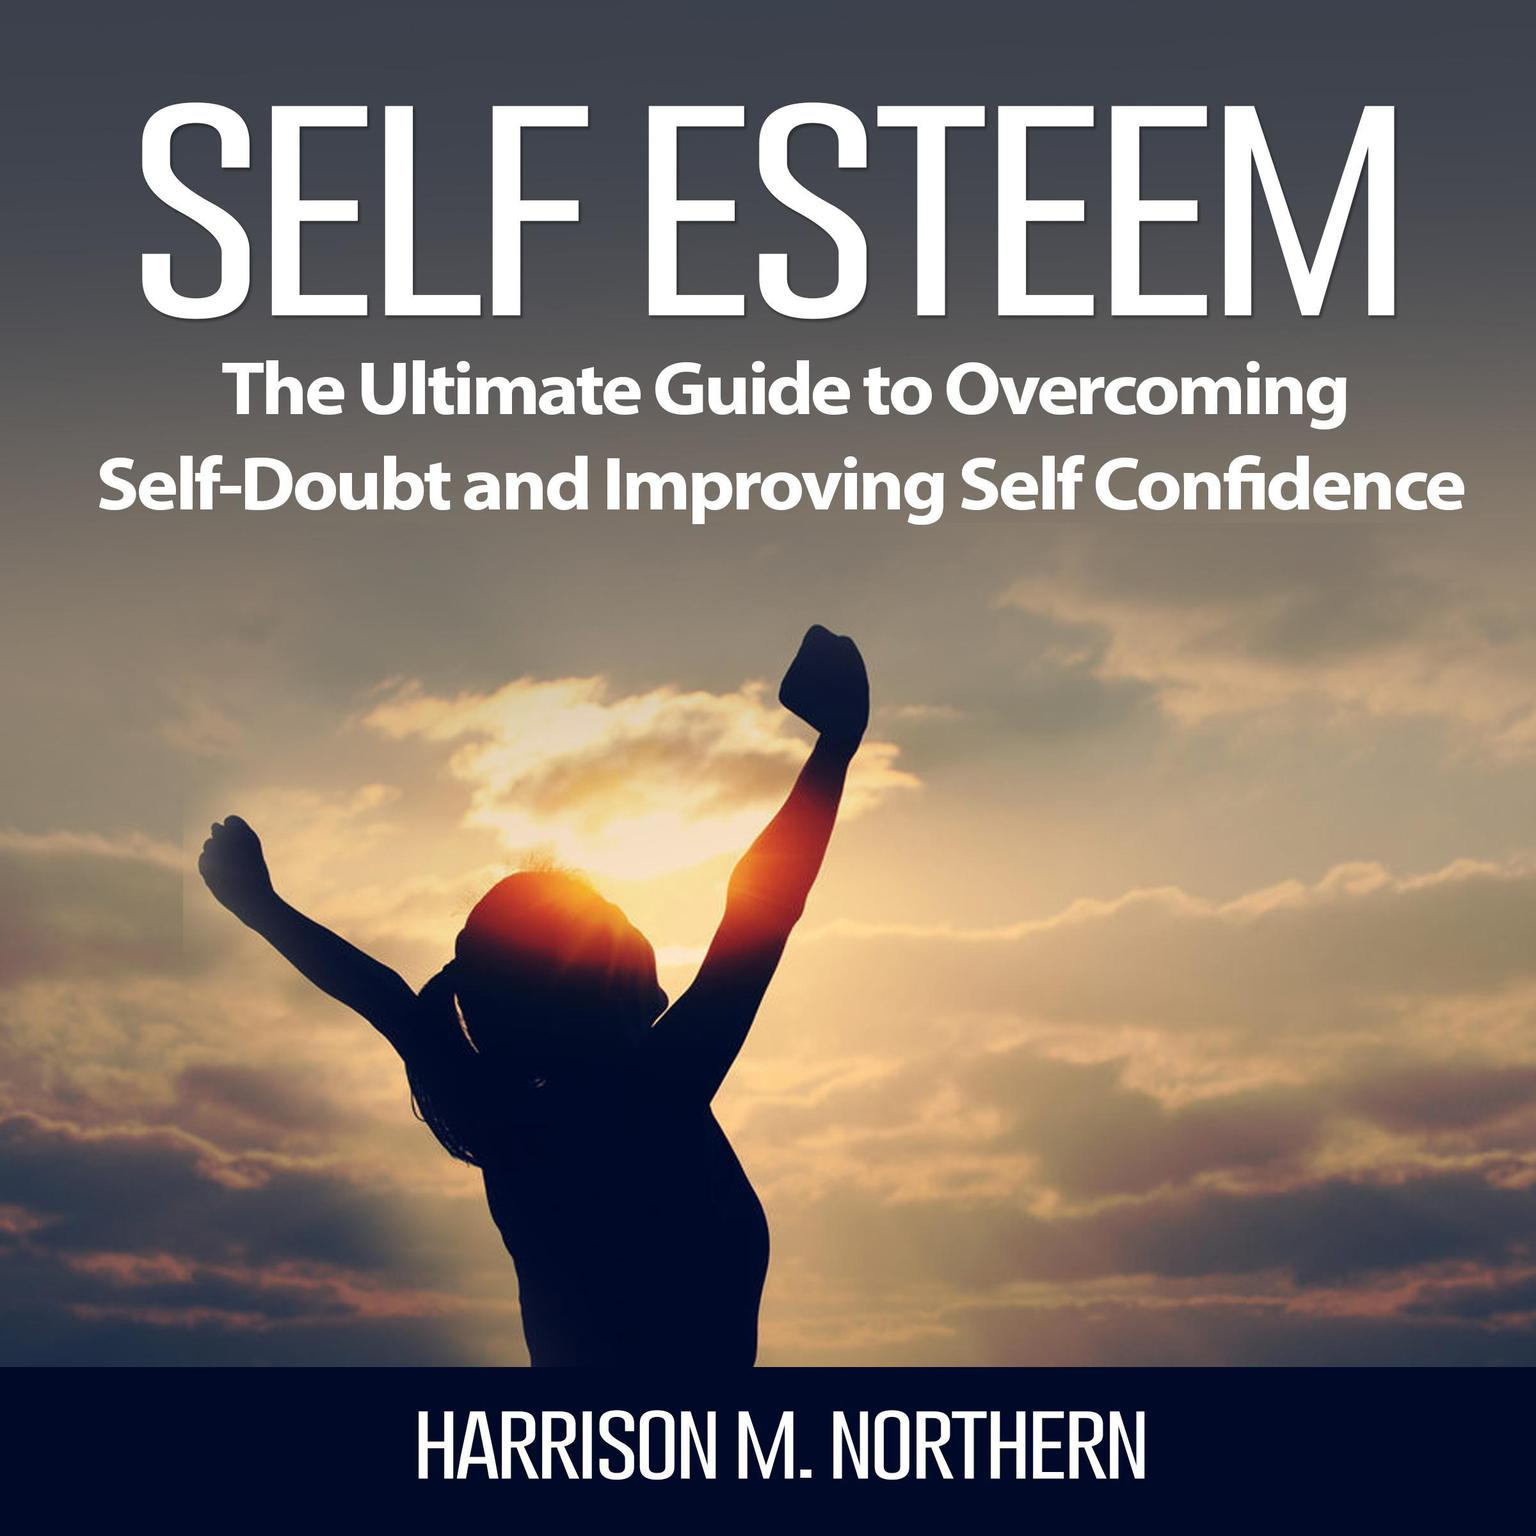 Self Esteem: The Ultimate Guide to Overcoming Self-Doubt and Improving Self Confidence Audiobook, by Harrison M. Northern